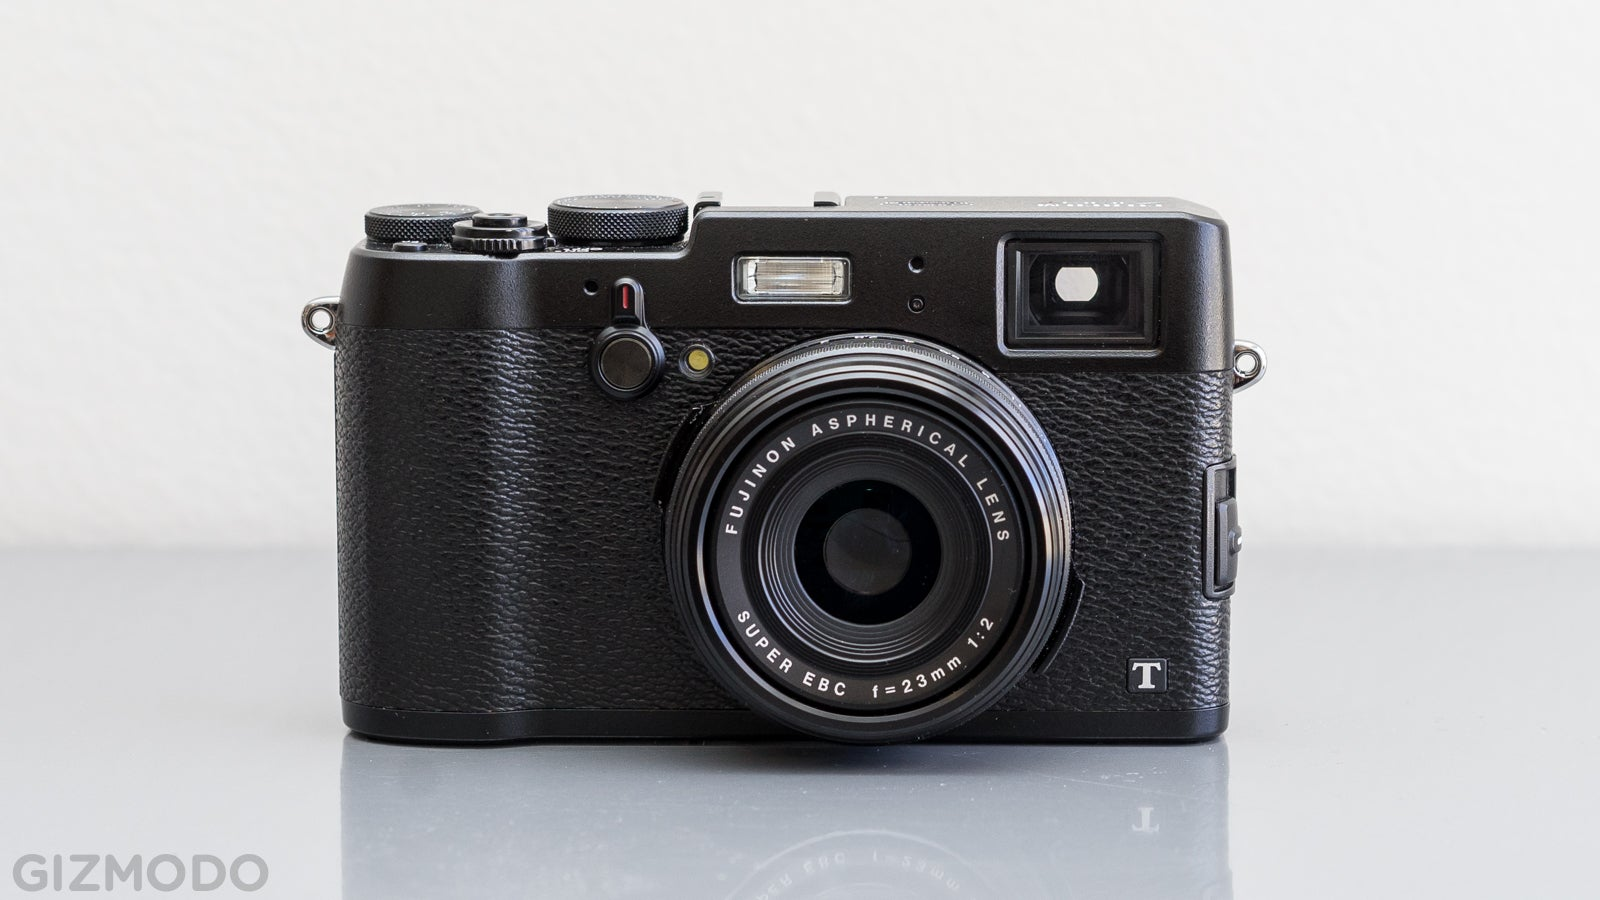 Field Test: Fujifilm's X100T Is the Most Amazing Camera I'd Never Buy